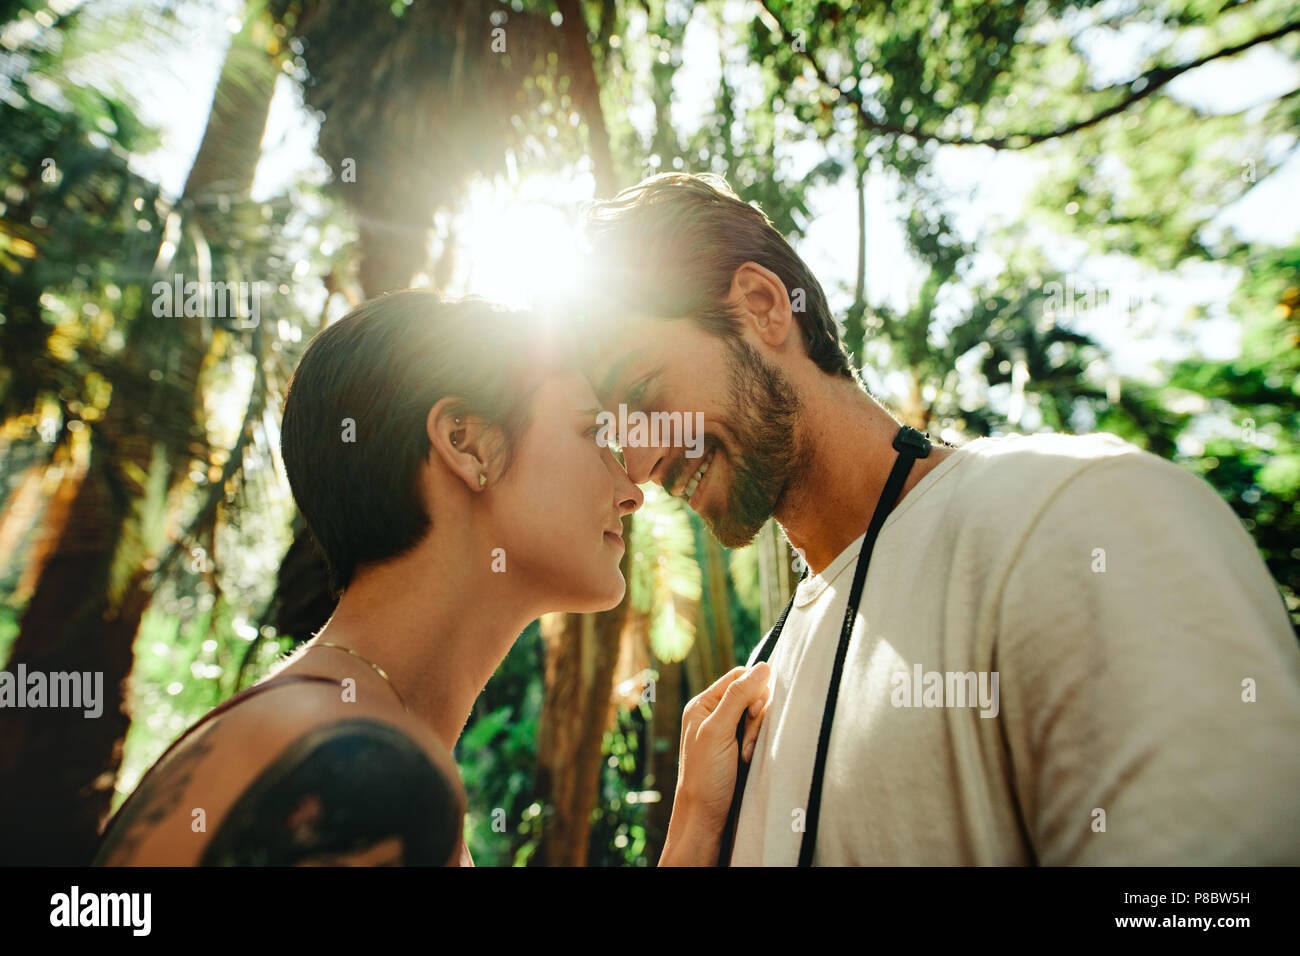 Man and woman standing close touching their foreheads in a park with sun in the background. Tourist couple in a happy and romantic mood while explorin - Stock Image